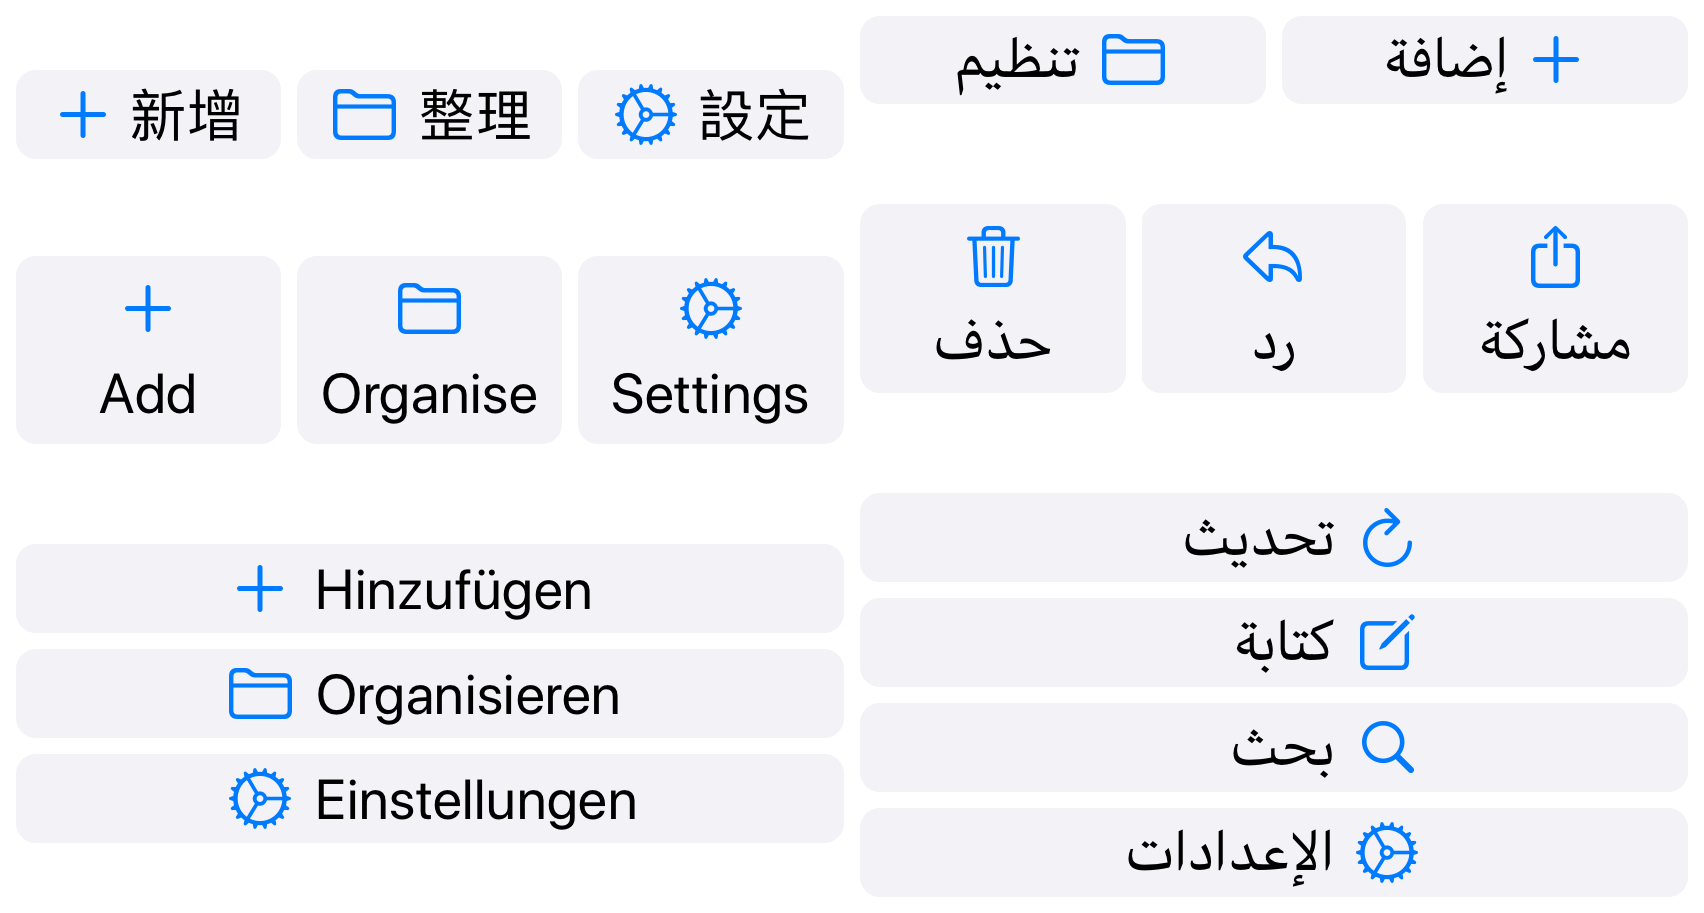 Composite screenshot of DynamicButtonStack in various languages. Chinese, English, German, Arabic.